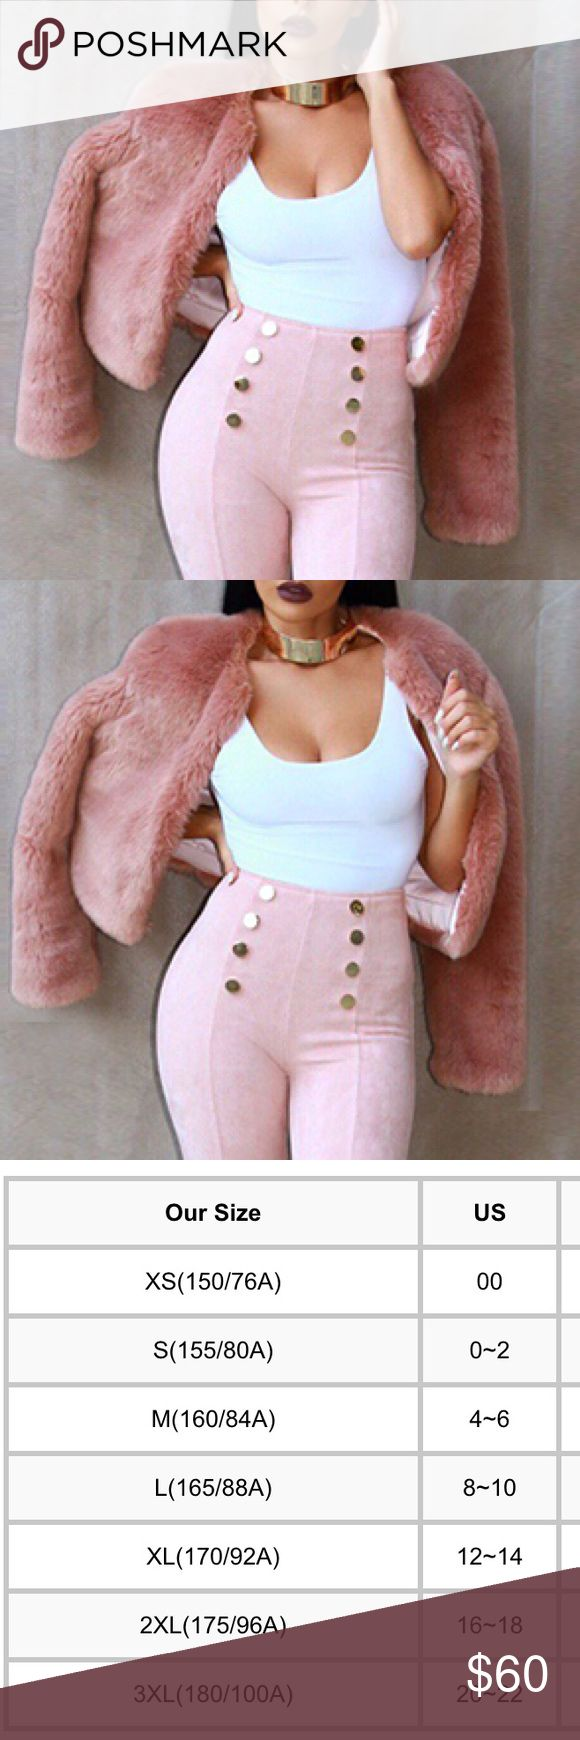 Pink Faux Fur Coat New, never used. Comes in many sizes. Currently being sold in my boutique in Miami. COMING SOON! IF YOU WANT TO BE NOTIFIED WHEN IT COMES IN, please let me know in the comments. Jackets & Coats